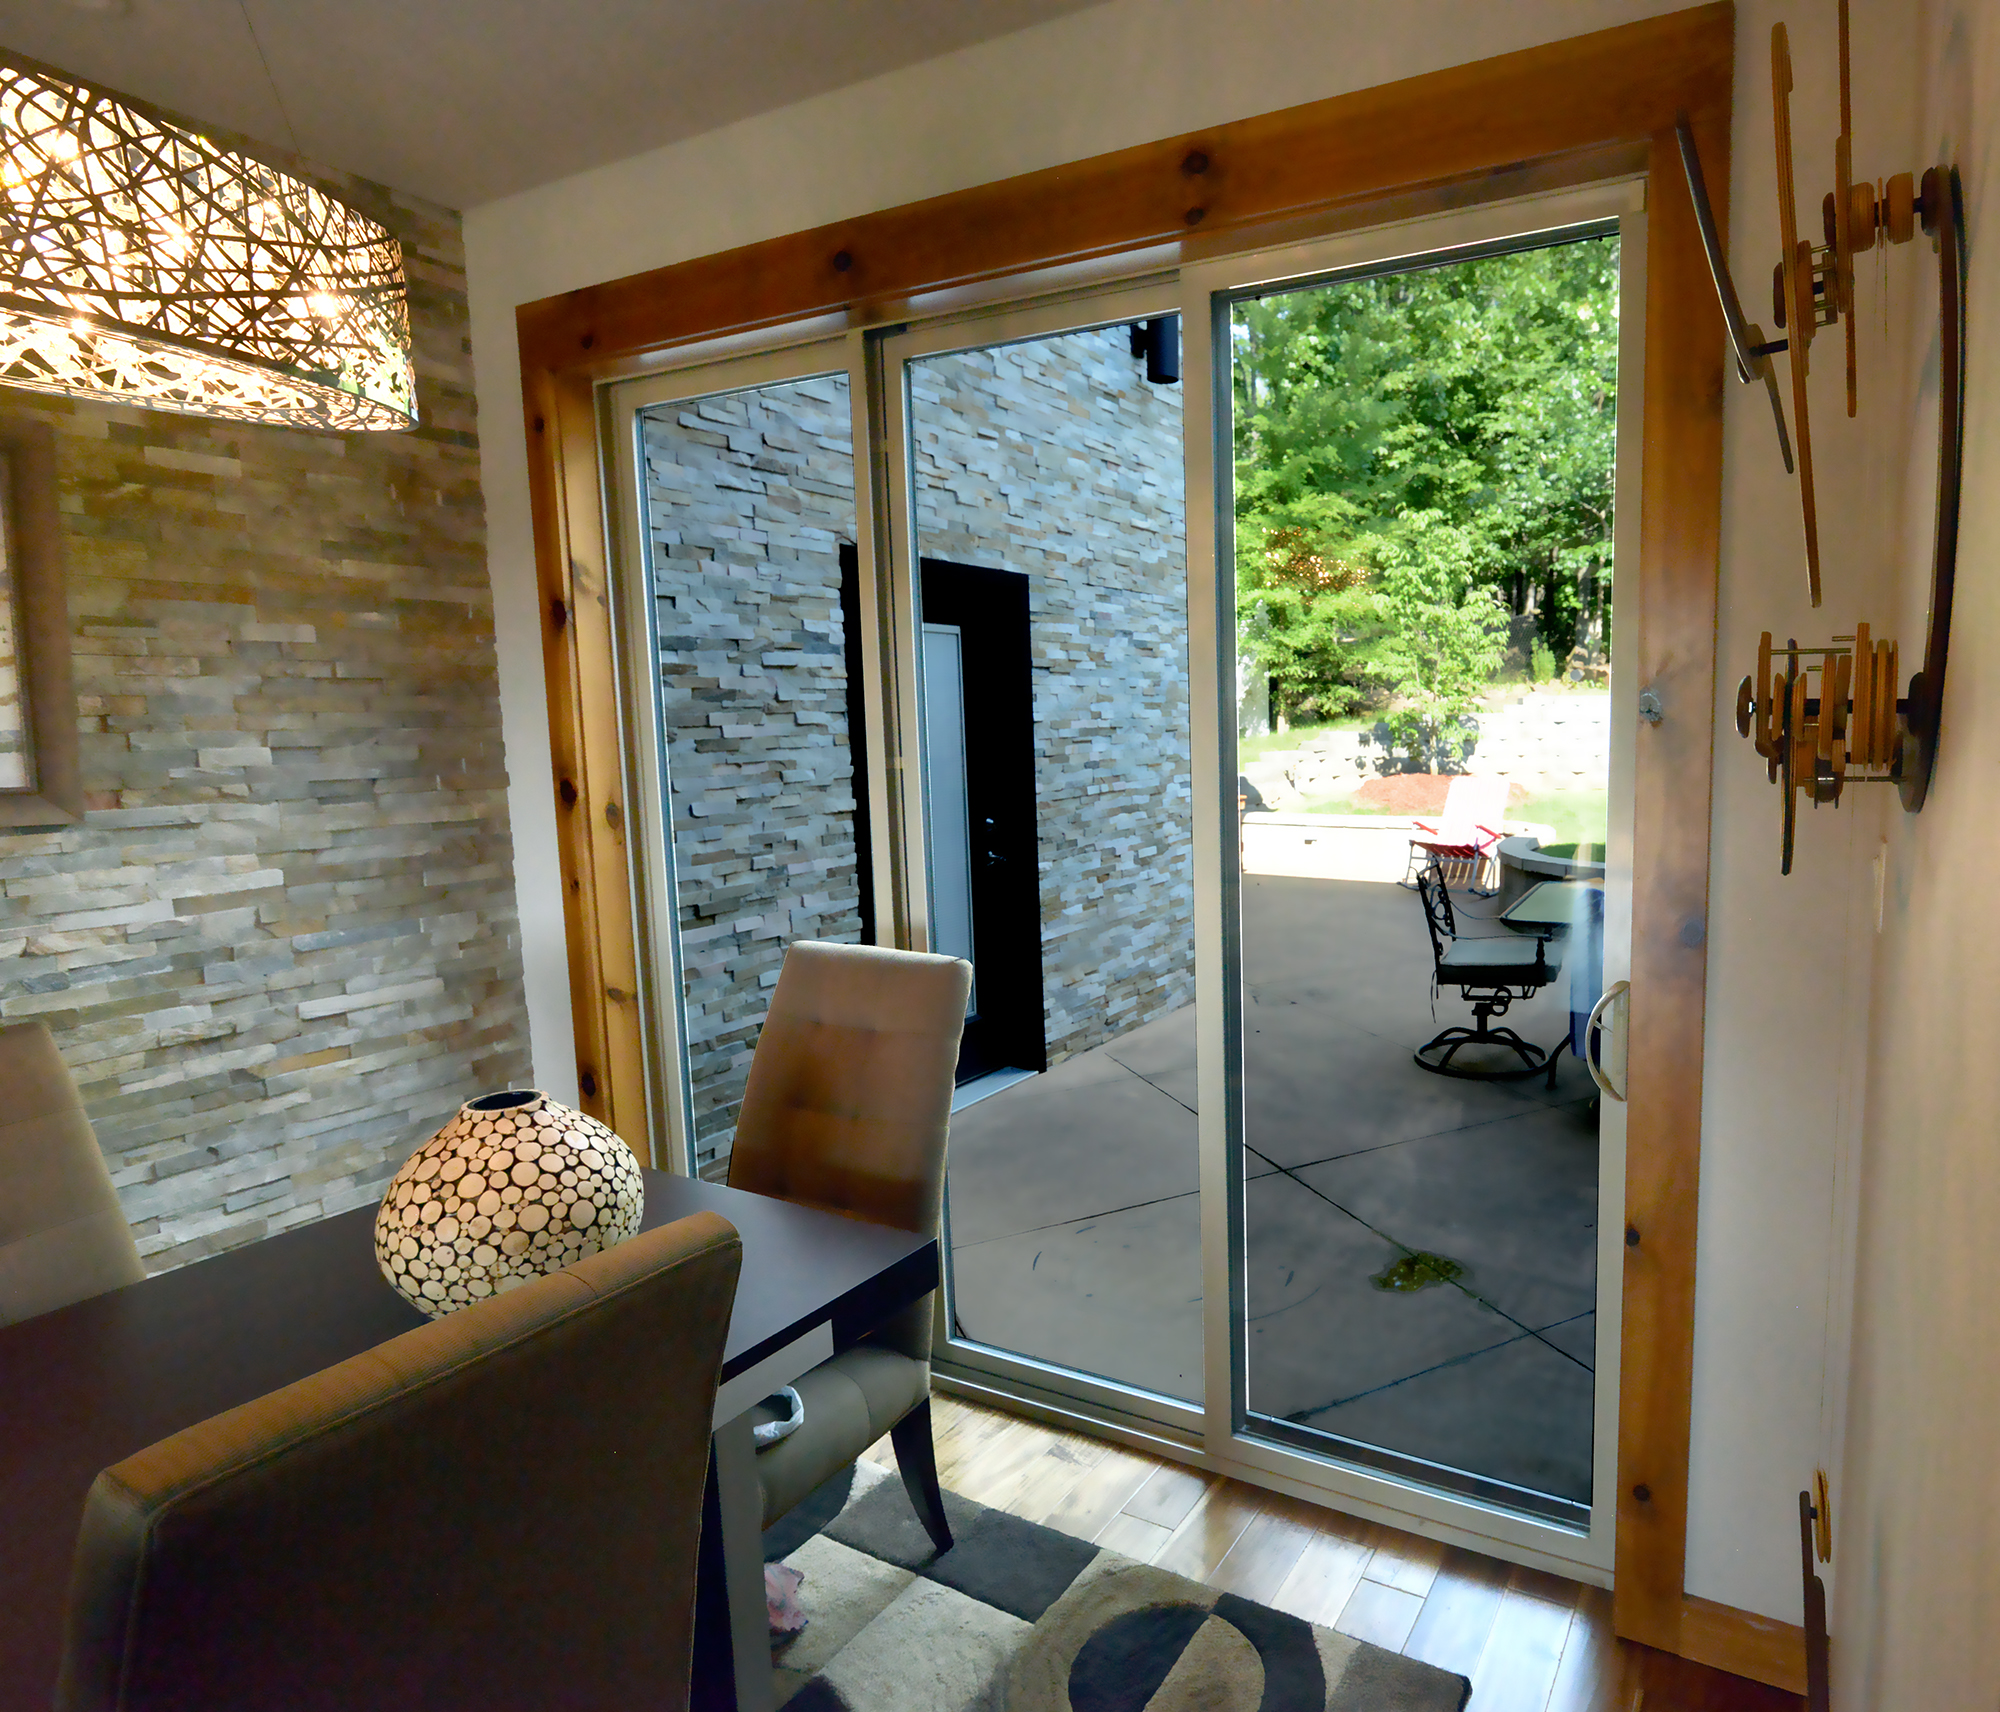 weatherbarr-Pinnacle-patio-door-4.jpg